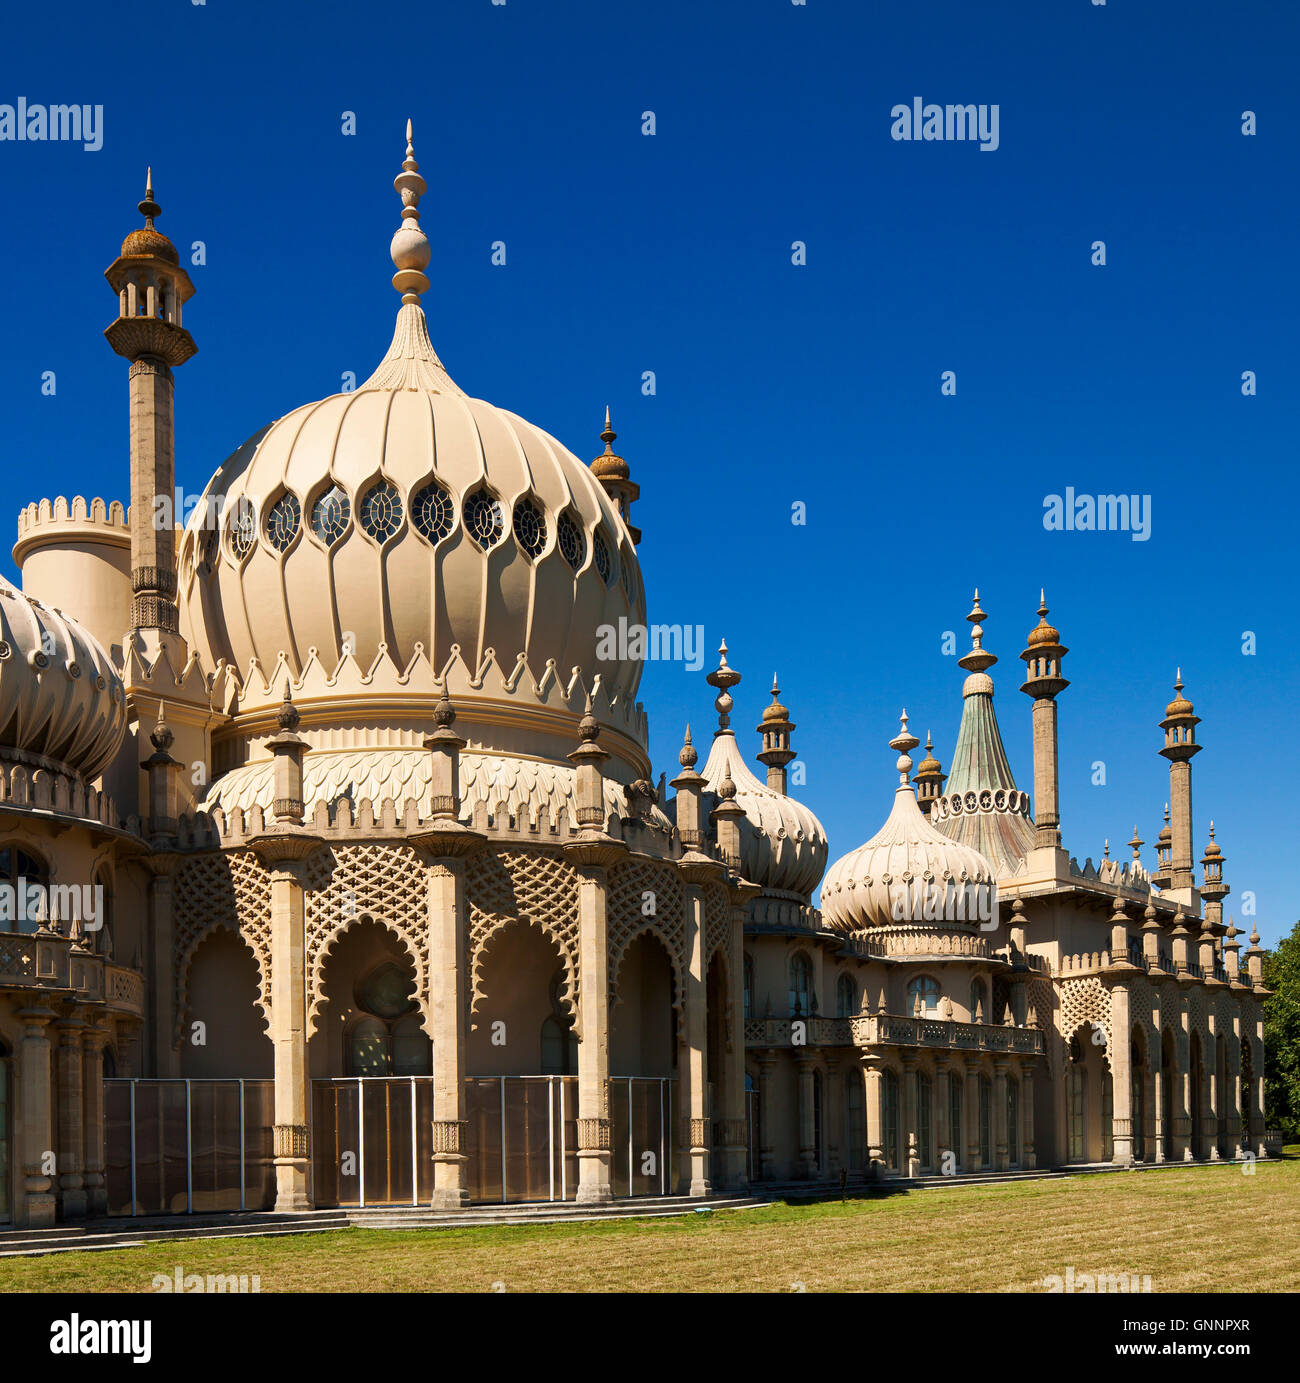 The Royal Pavilion Brighton. - Stock Image